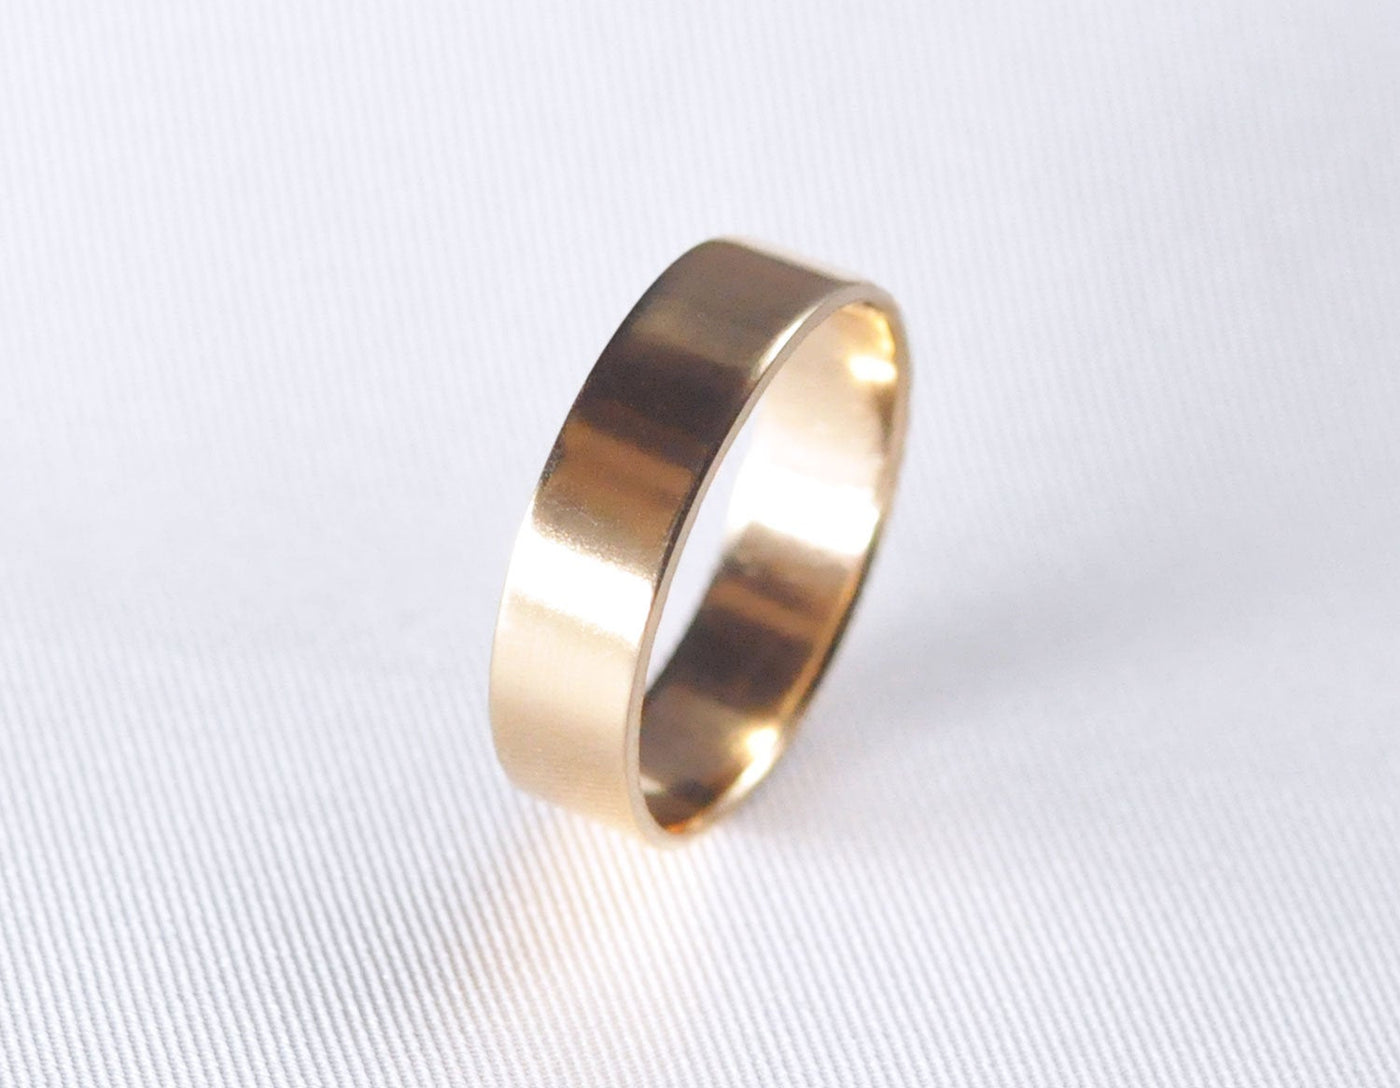 recycled 14 karat gold wedding ring, 14k wedding gold band for women, karat1424